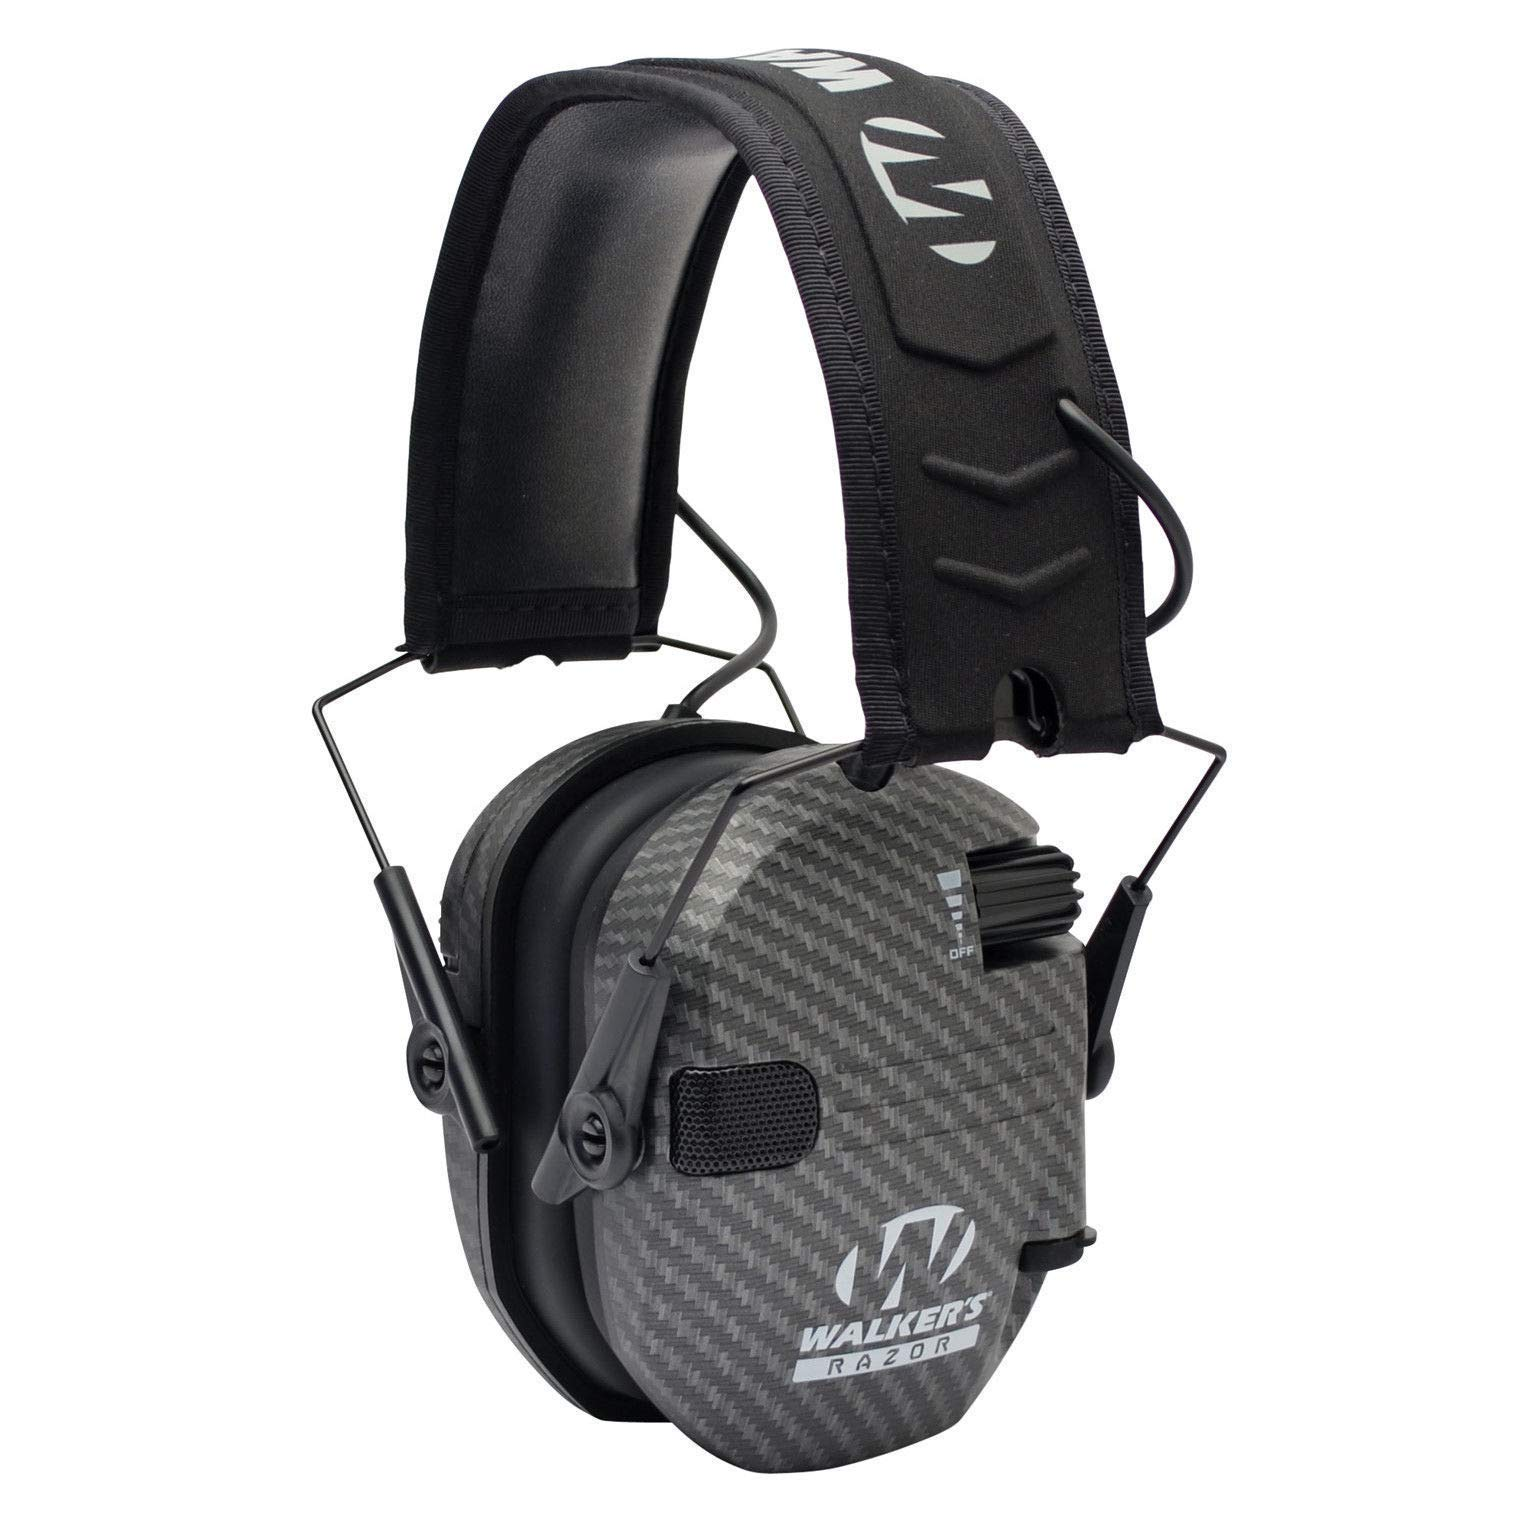 Walkers Razor Slim Electronic Shooting Hearing Protection Muff (Sound Amplification and Suppression) with Protective Case, Carbon by Walkers (Image #3)